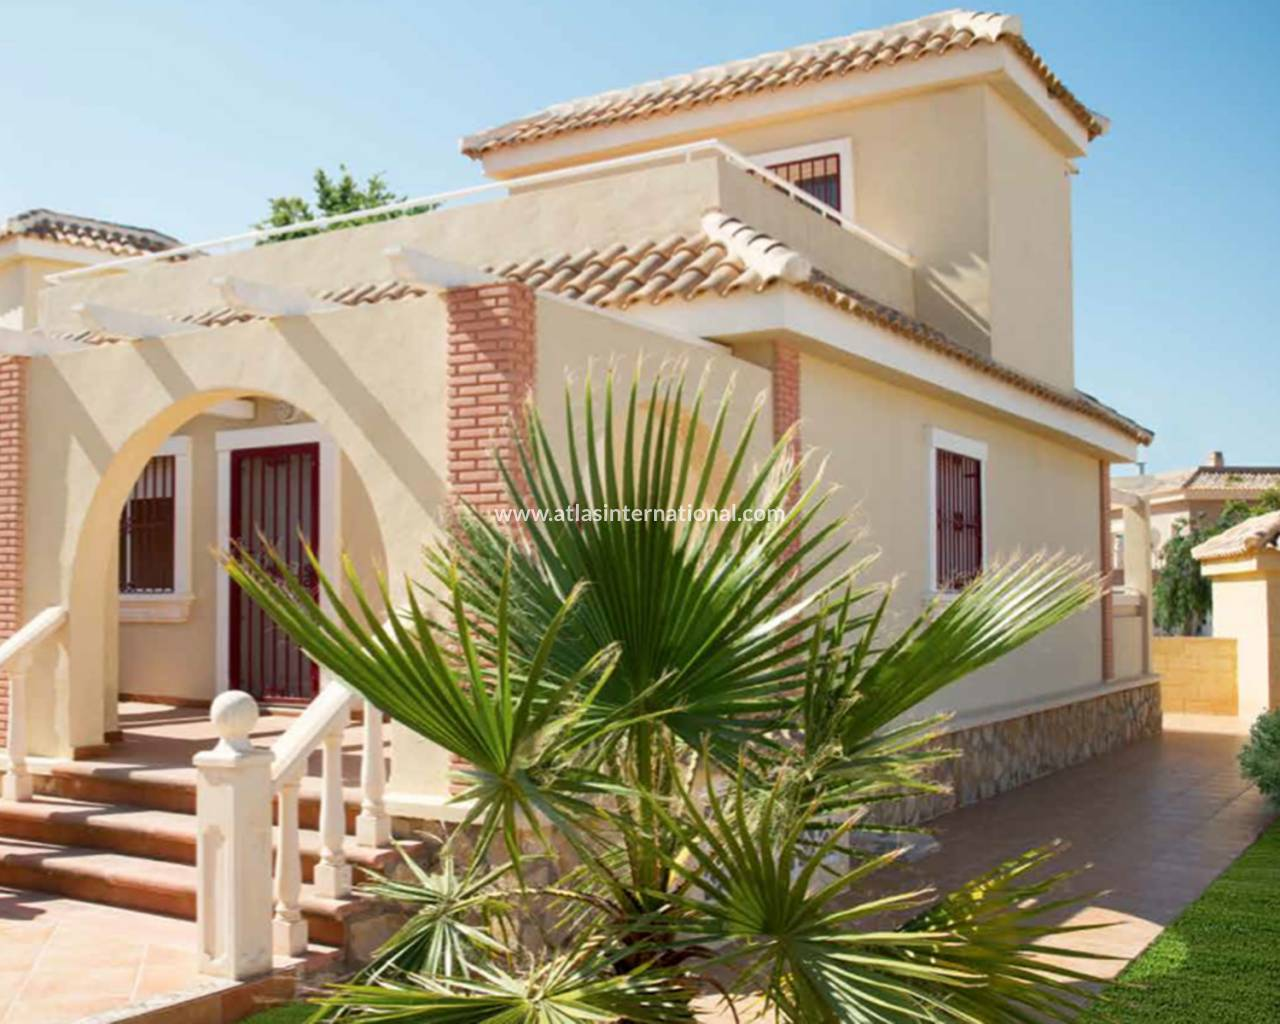 Detached Villa - Nouvelle construction - Balsicas - Balsicas